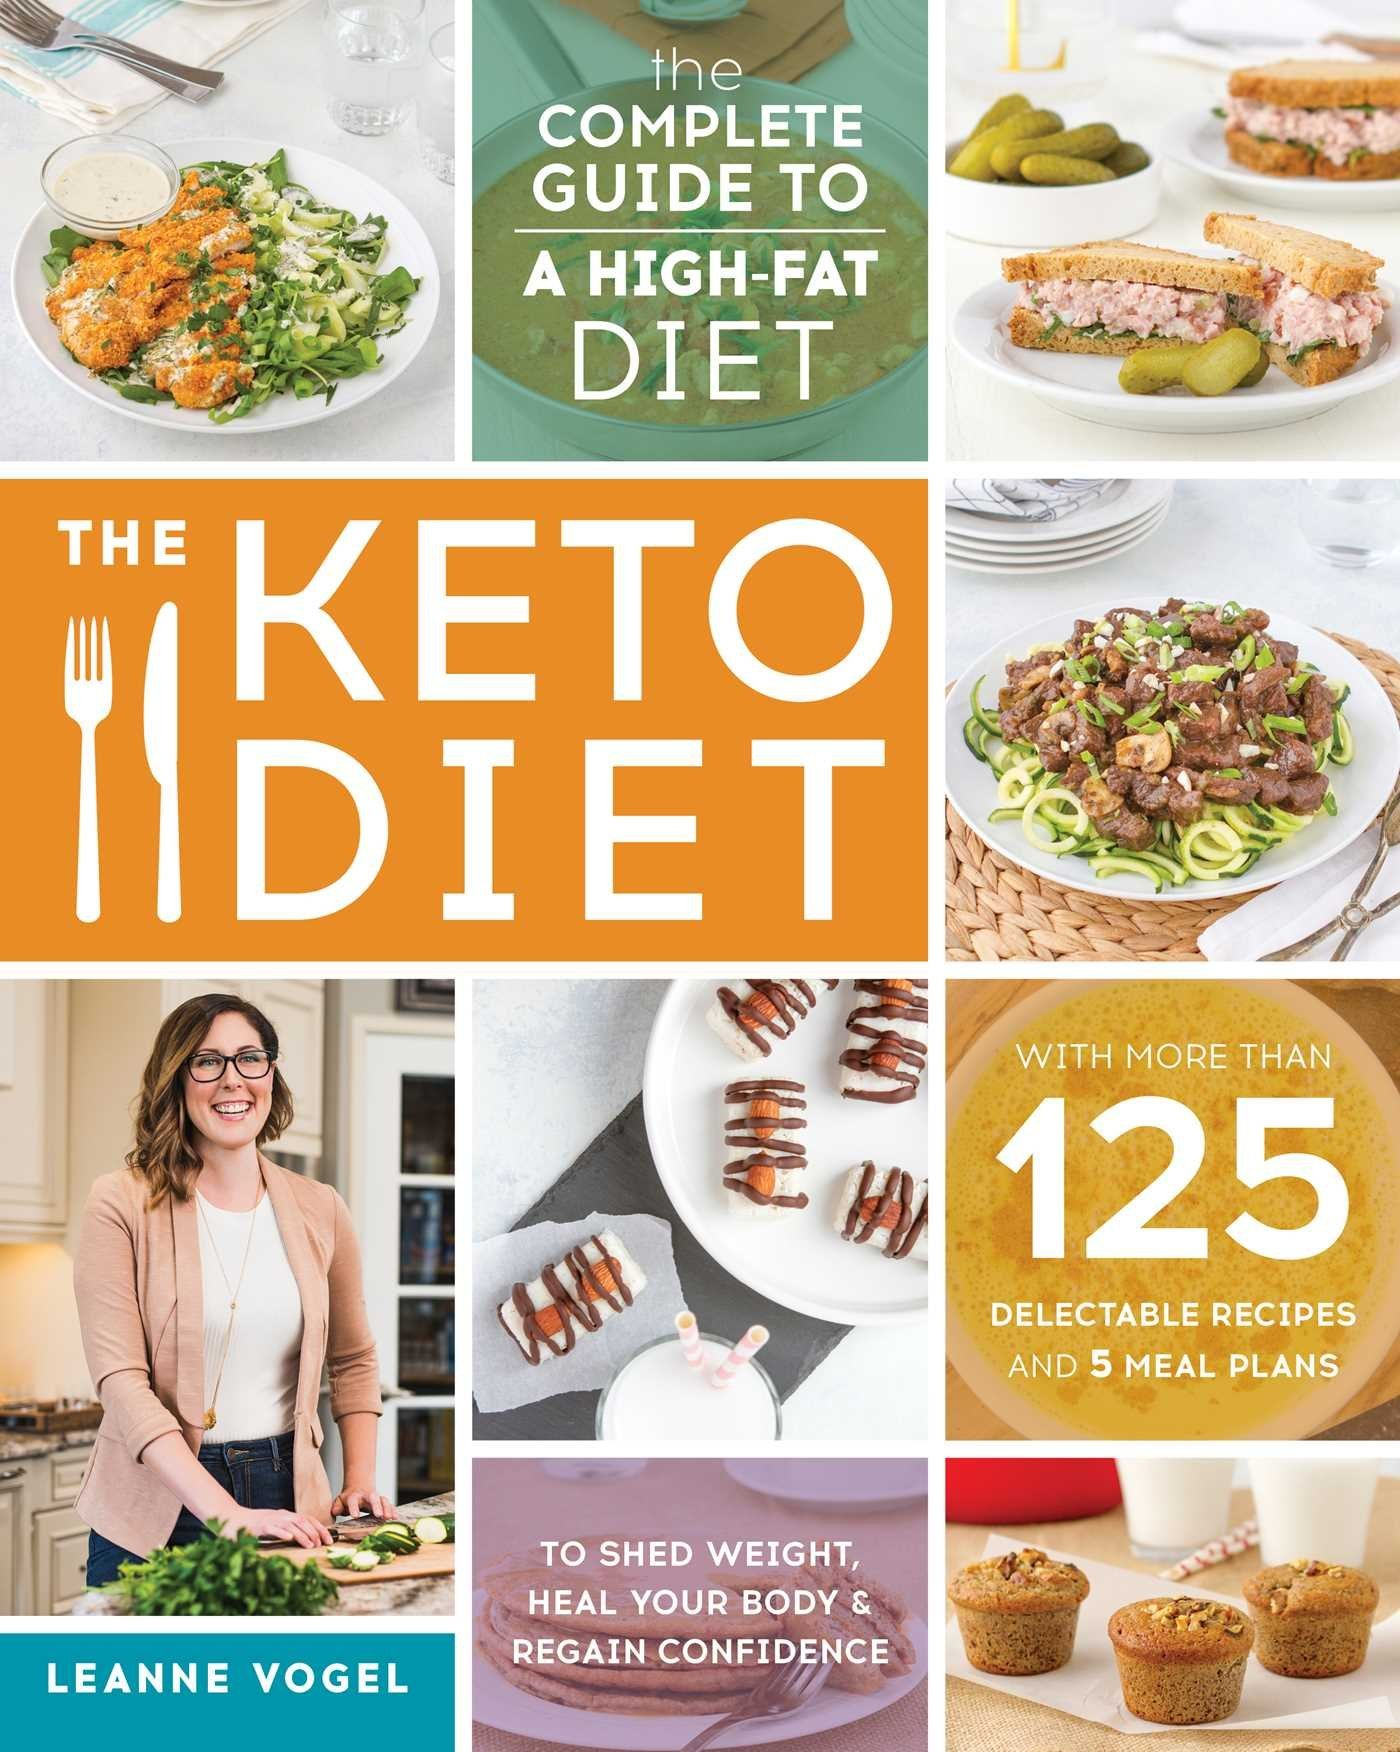 NEW Keto Cookbooks For Your Bookshelf - inspiration for your next Keto Cookbook